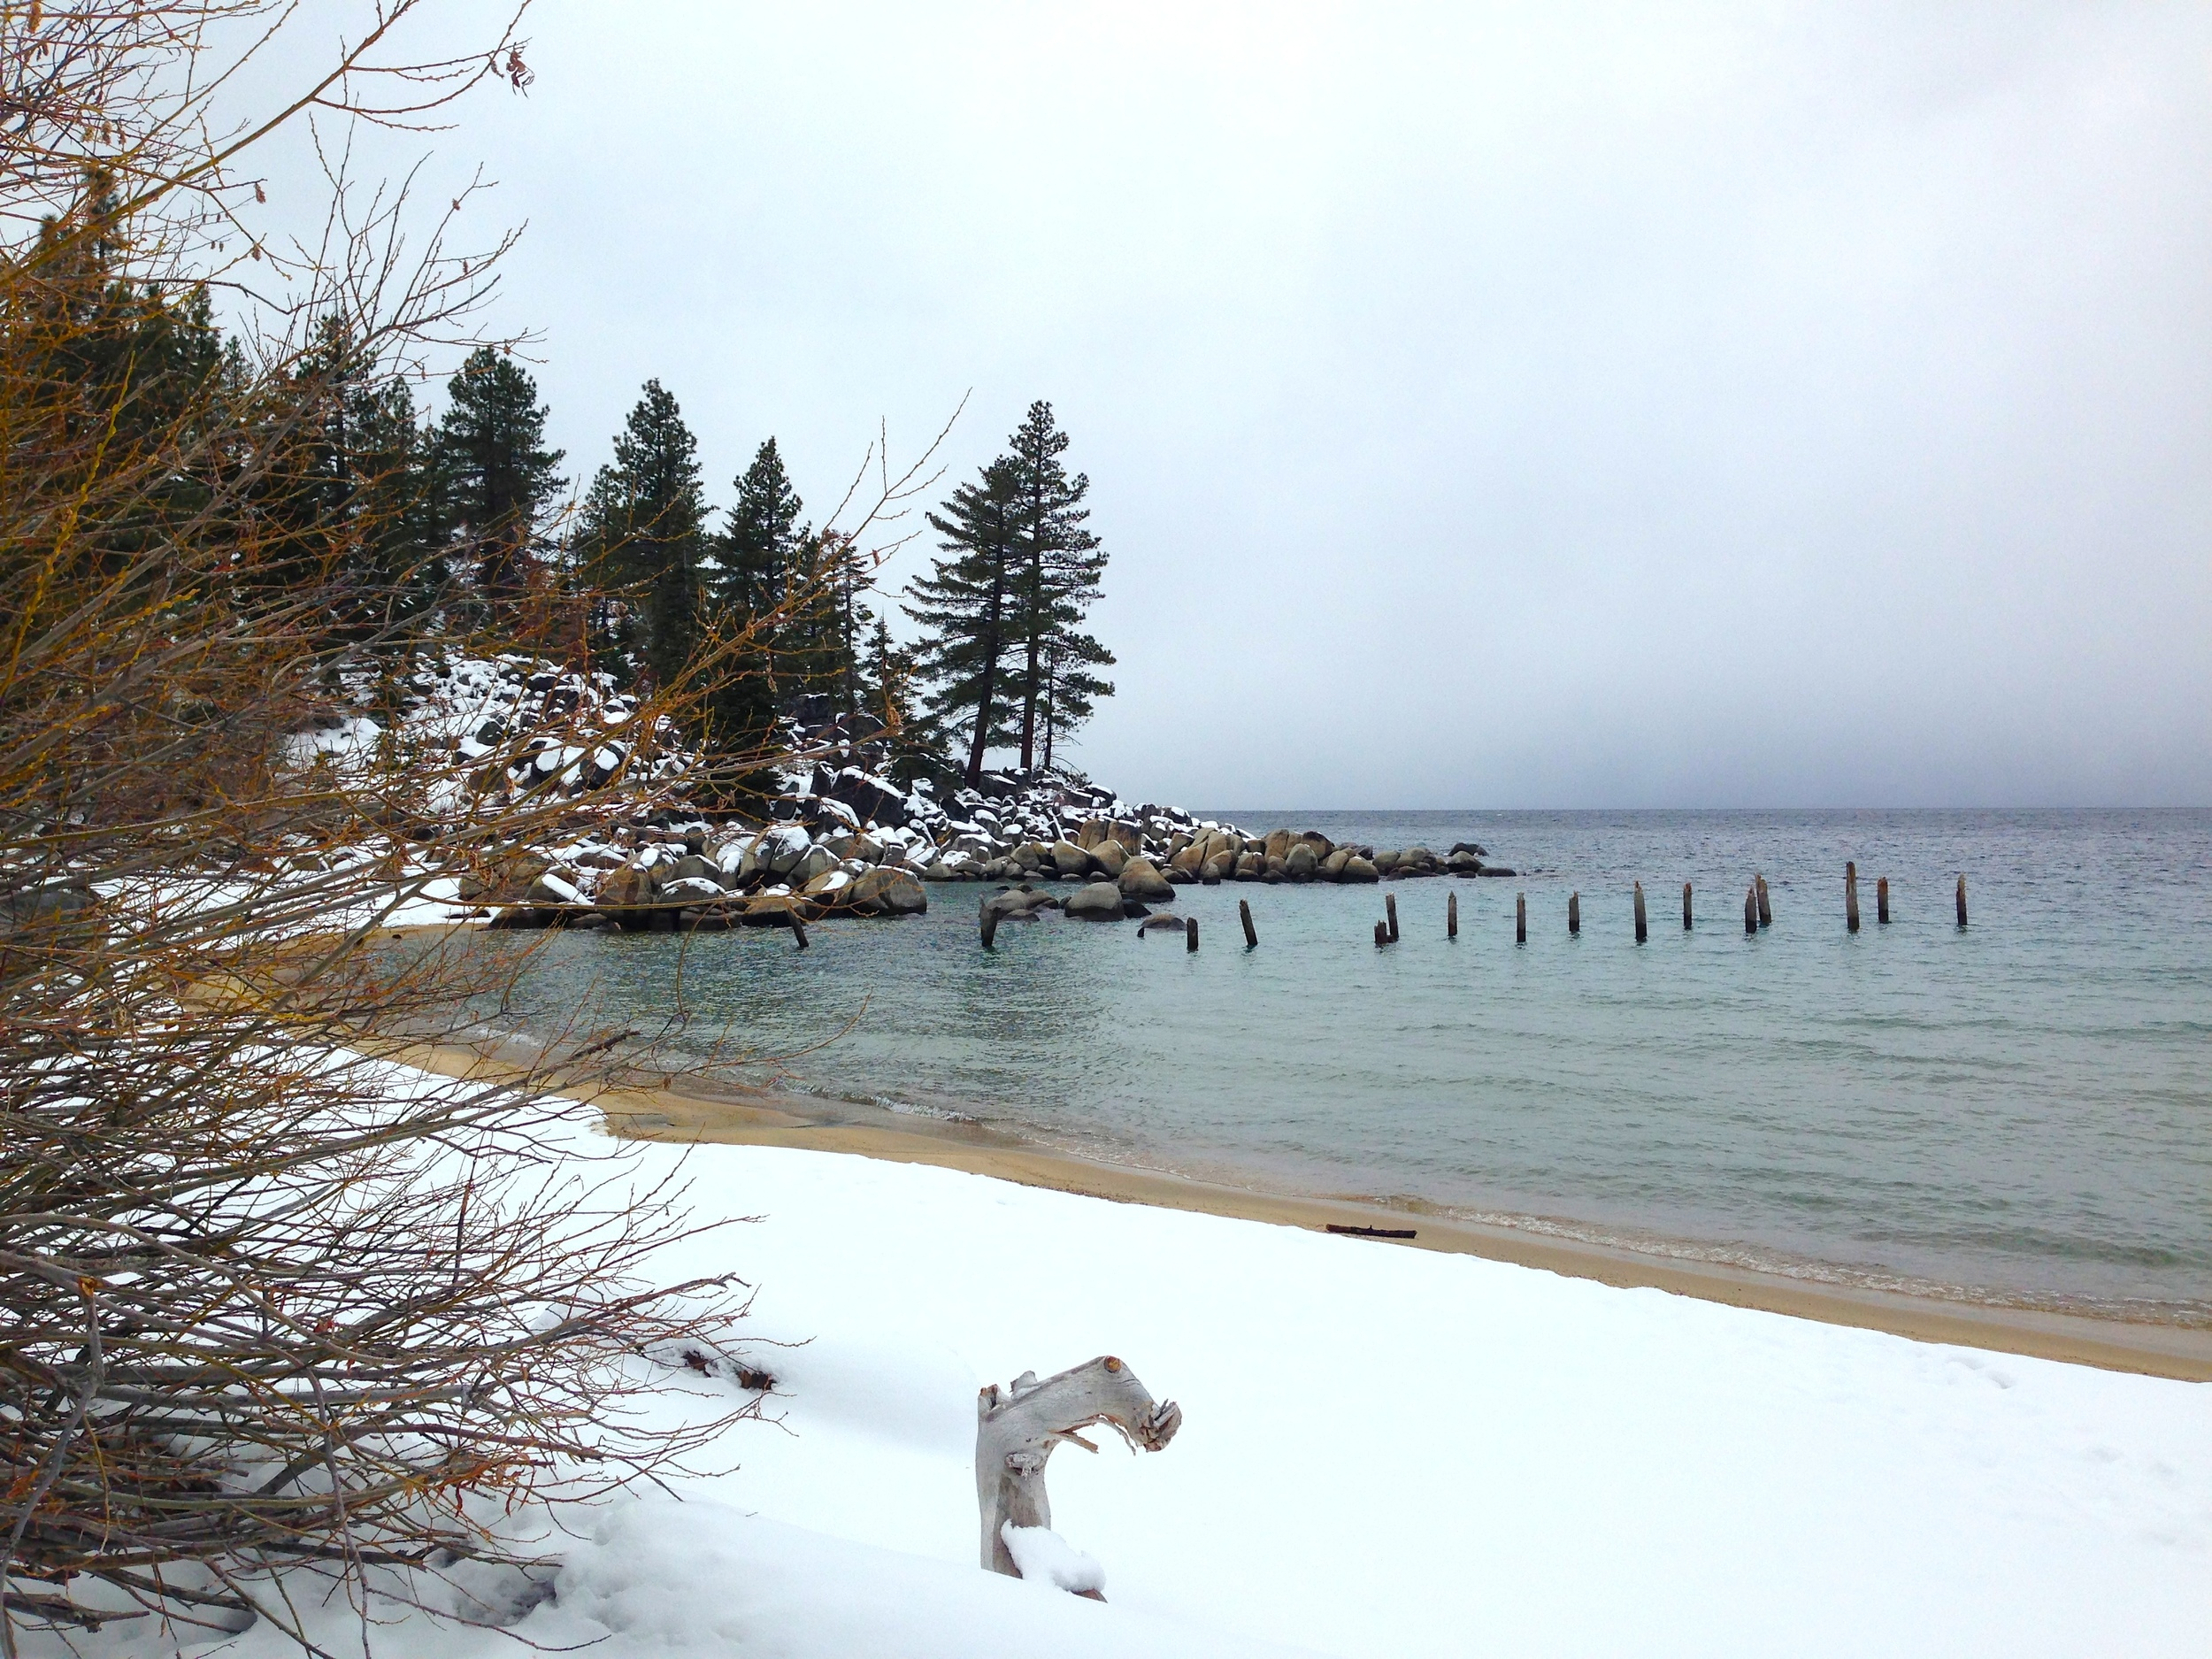 Lake Tahoe. Finding a snowy hiking trail off the side of a road---sans guidebook or insider tips---leading to the area's namesake lake.